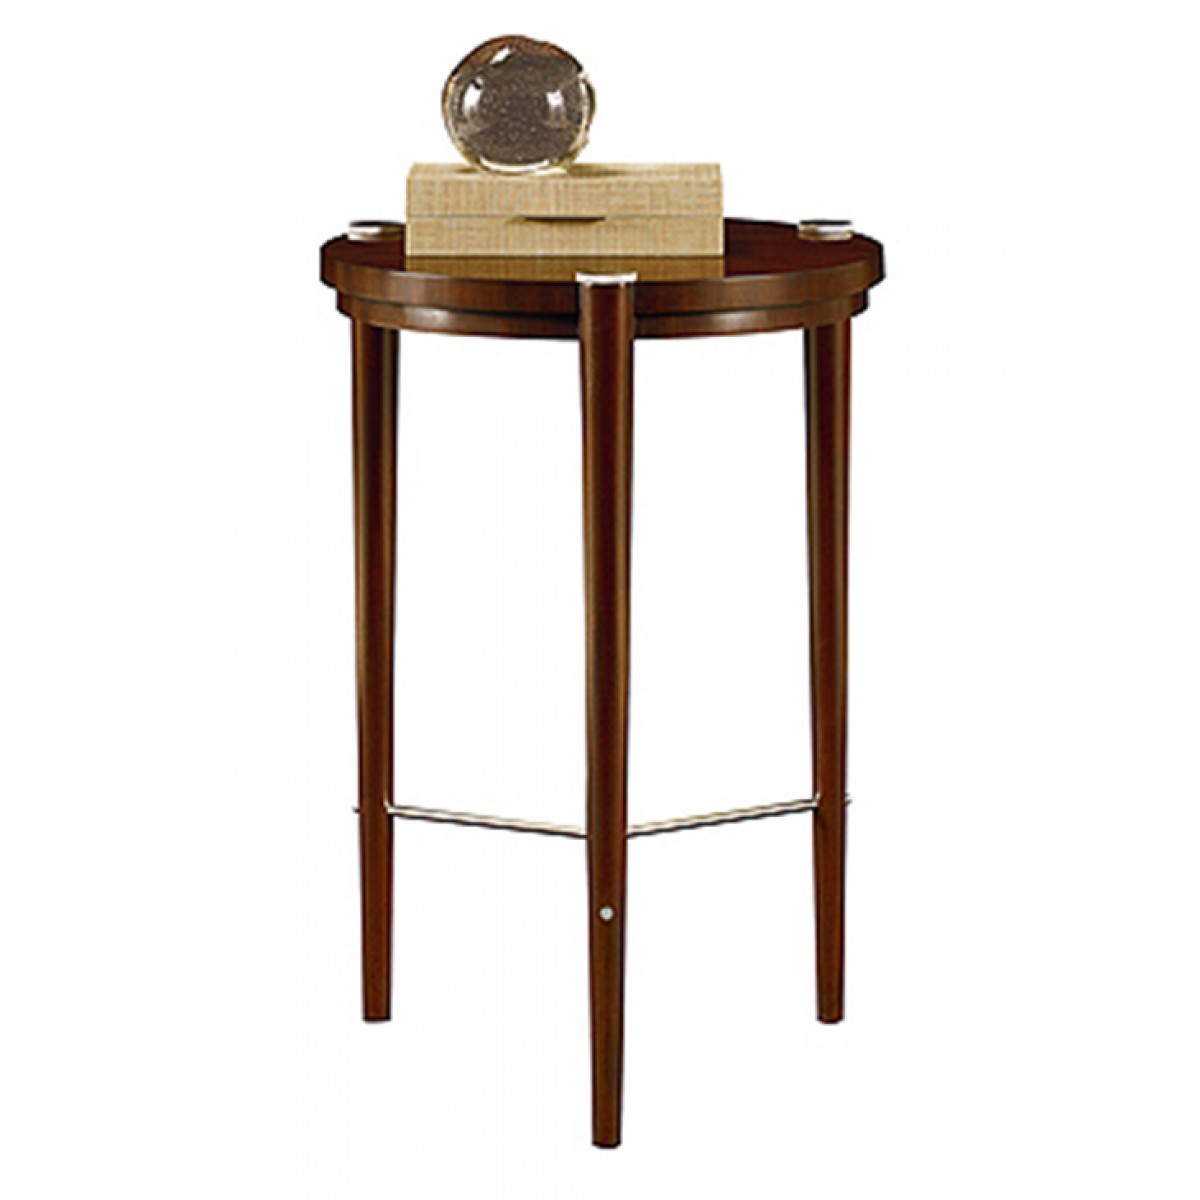 henredon scene six occasional table knurl accent tablecloths and placemats kitchen dining room furniture woven metal tiffany nightstand lamps beautiful shades light small counter